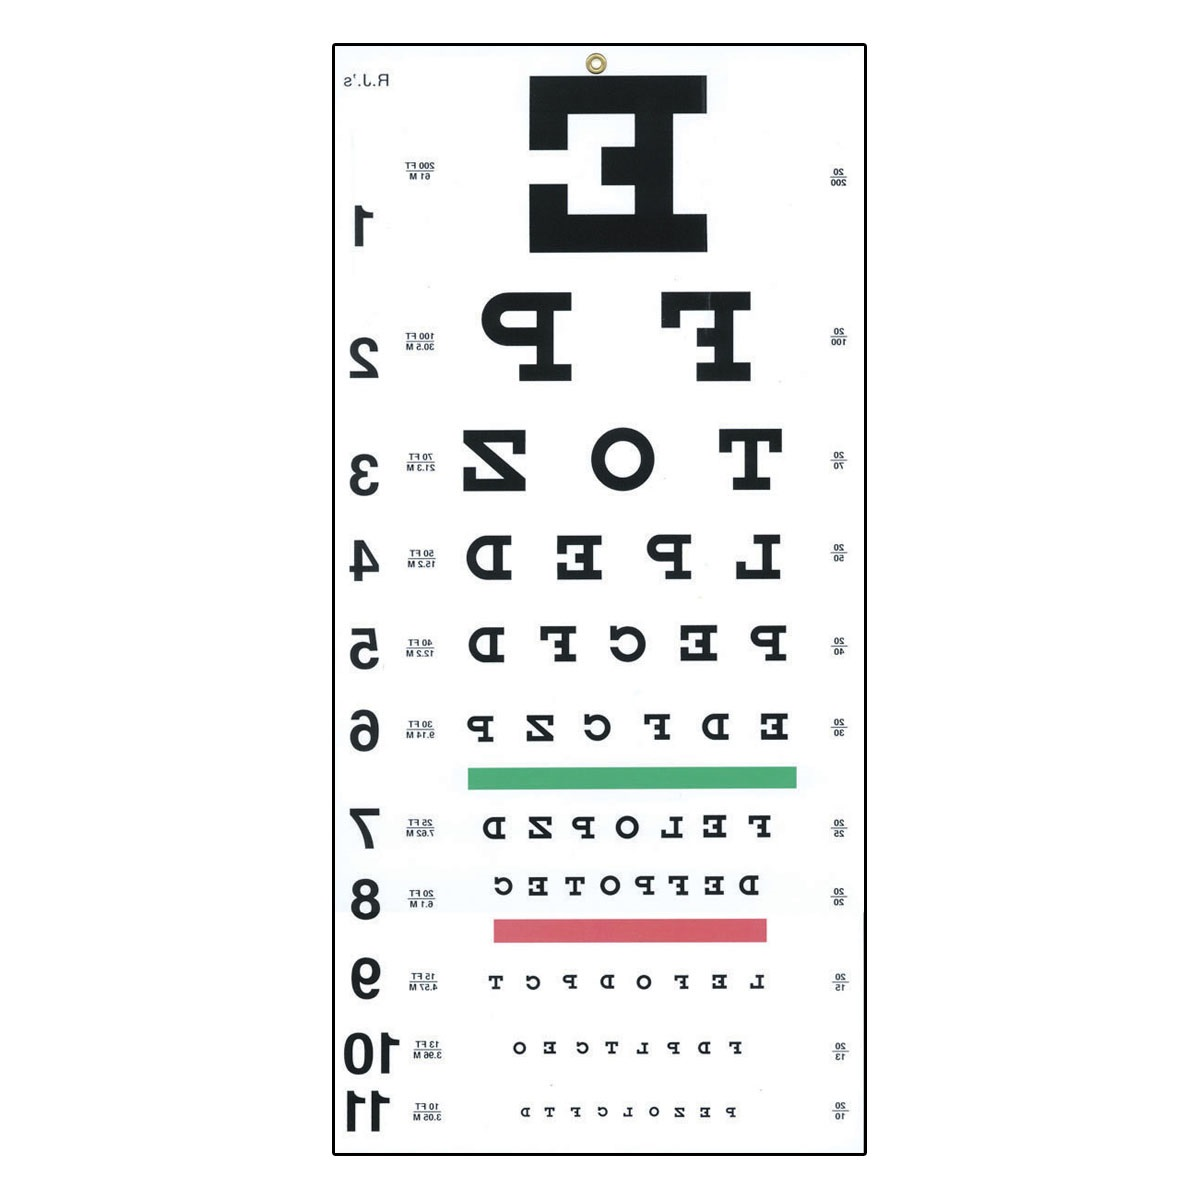 image relating to Printable Snellen Charts known as Printable Opticians Eye Chart